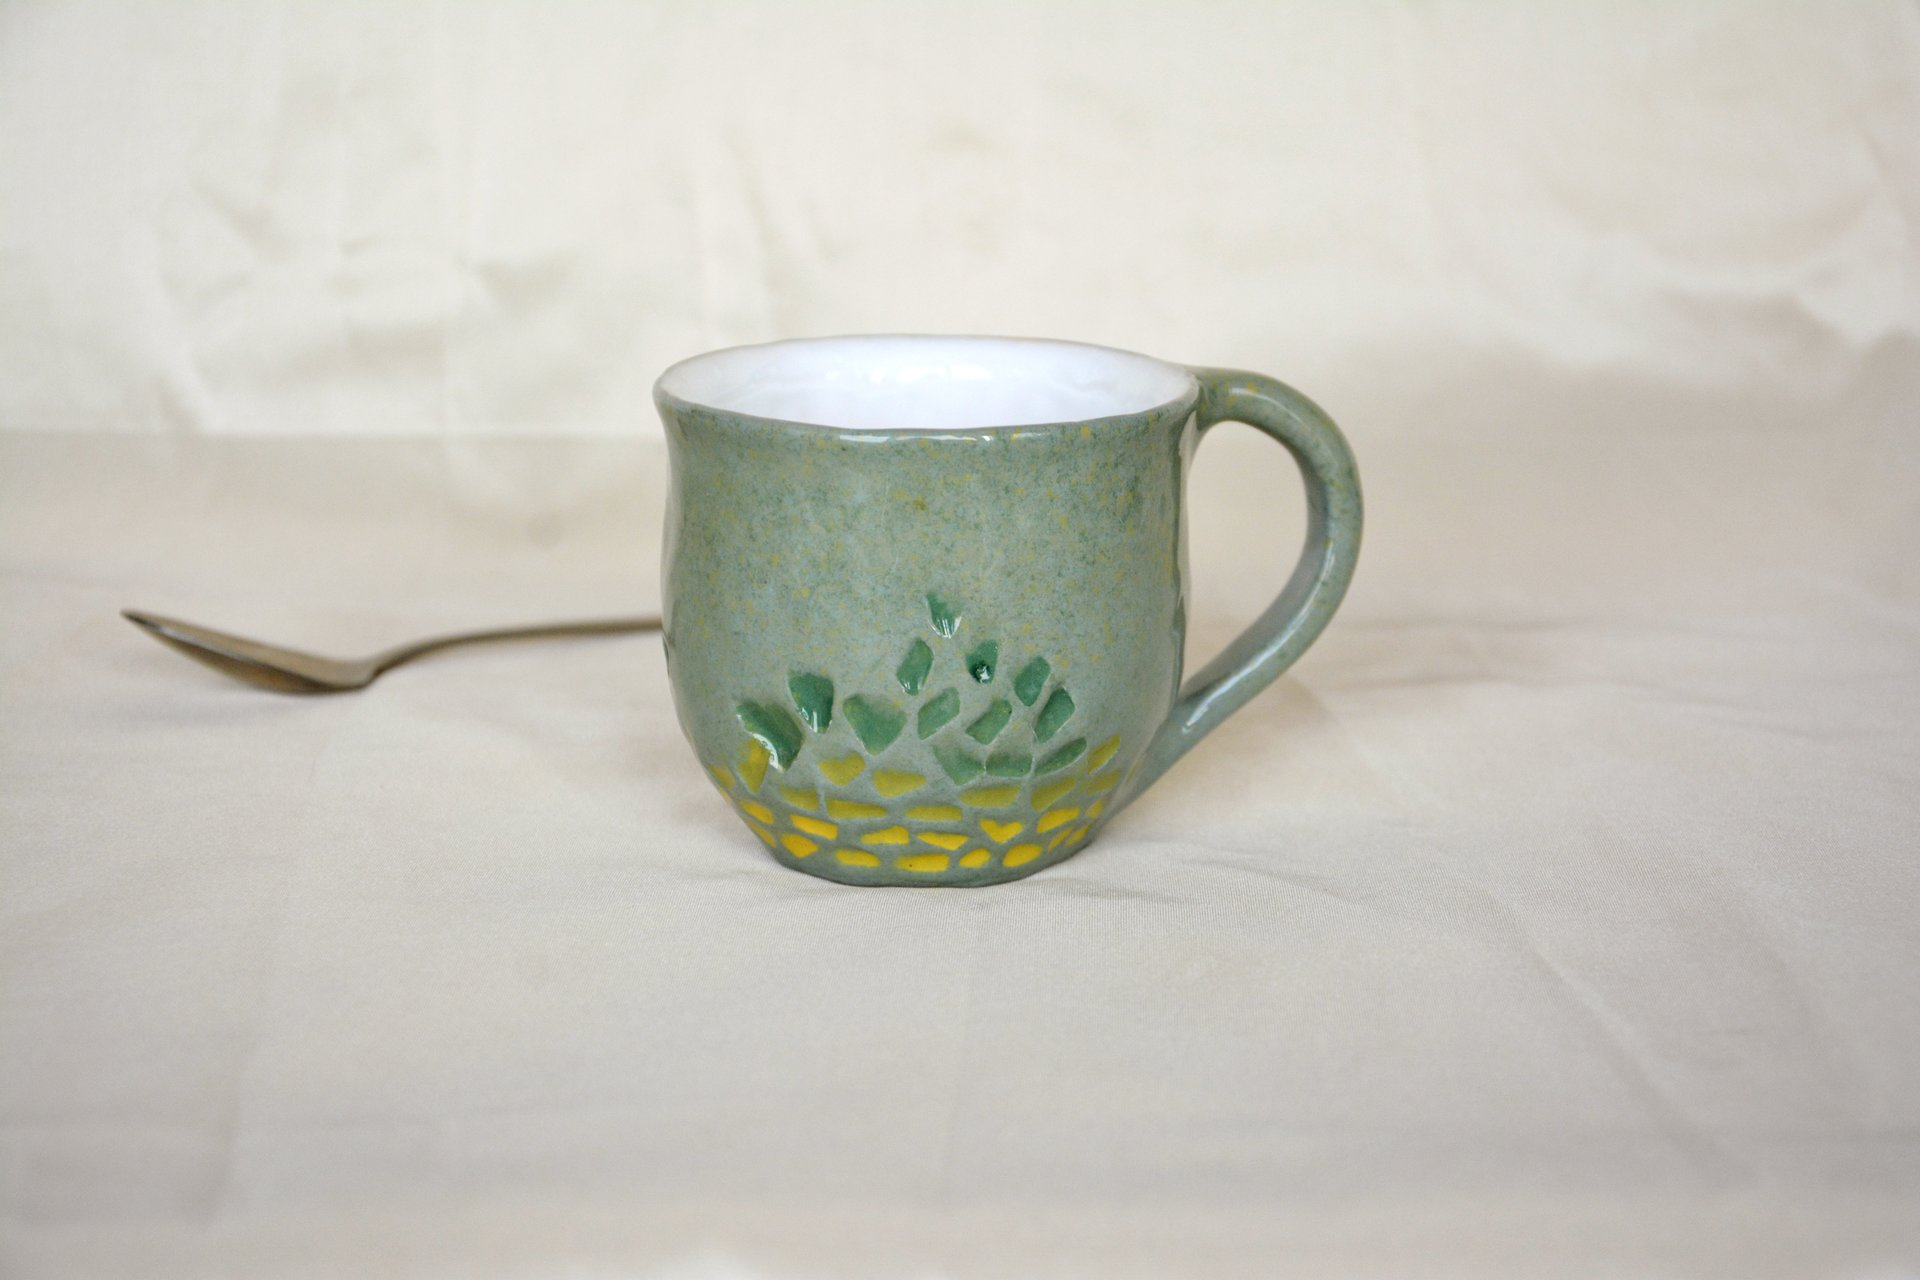 Gray cup for tea or coffee, height - 7 cm, volume - 220 ml, photo 7 of 8.